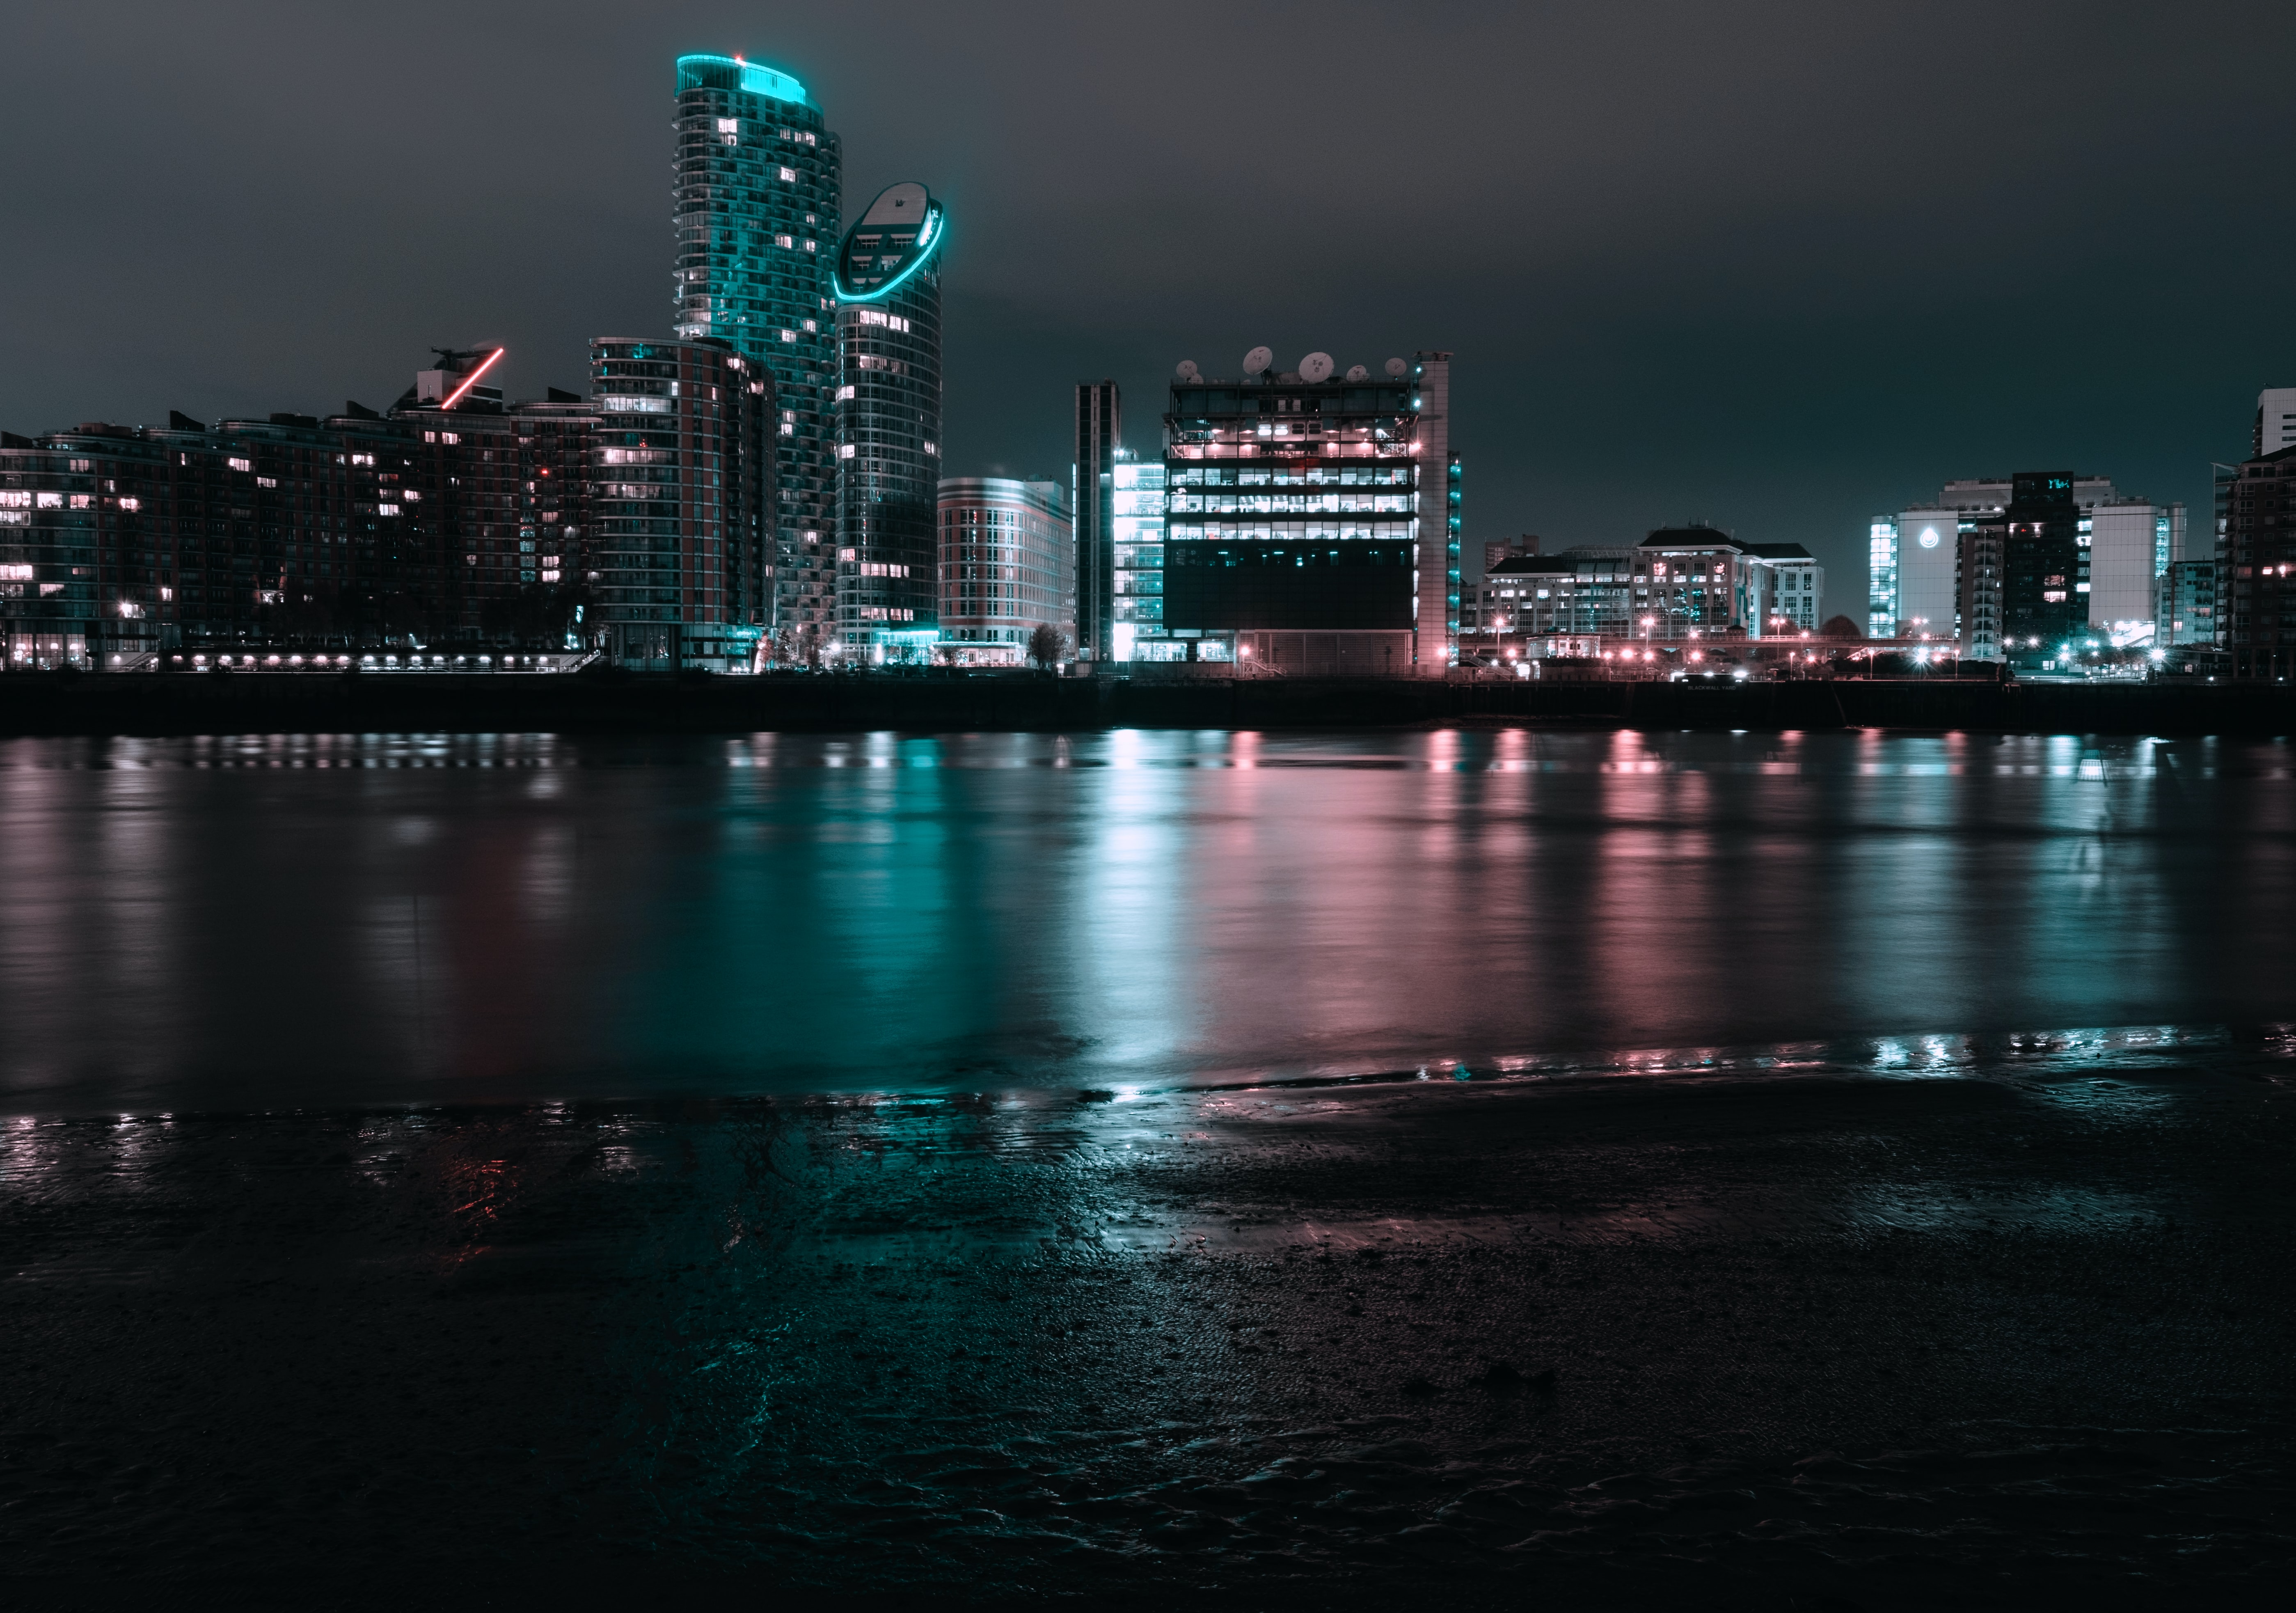 city near body of water during night